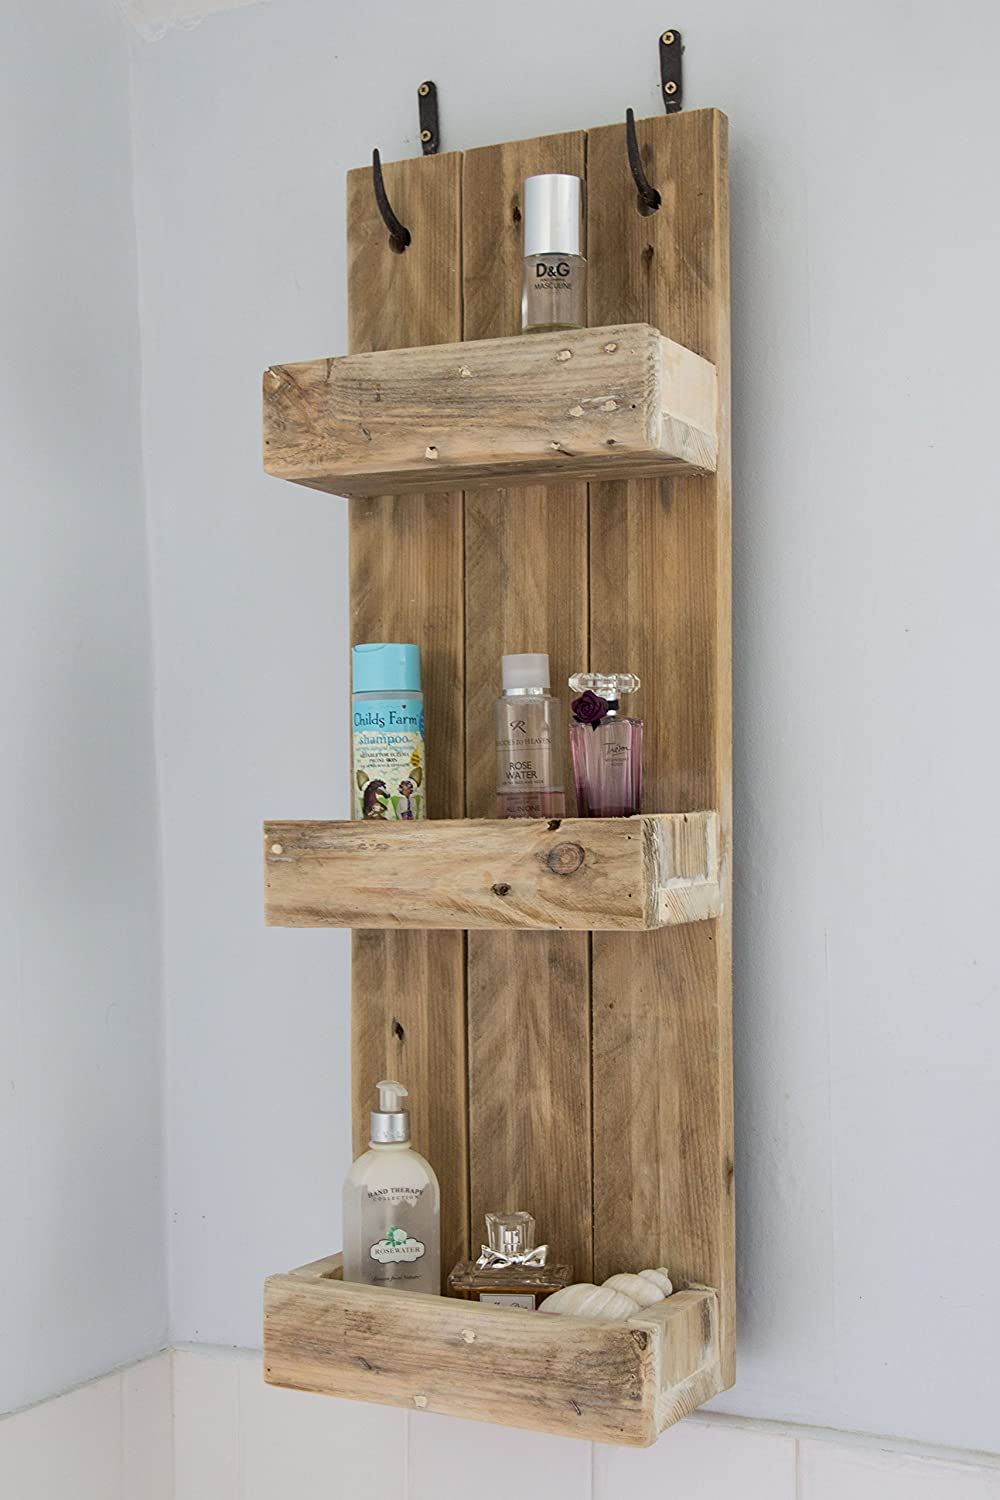 Rustic Bathroom Shelves Made From Reclaimed Pallet Wood